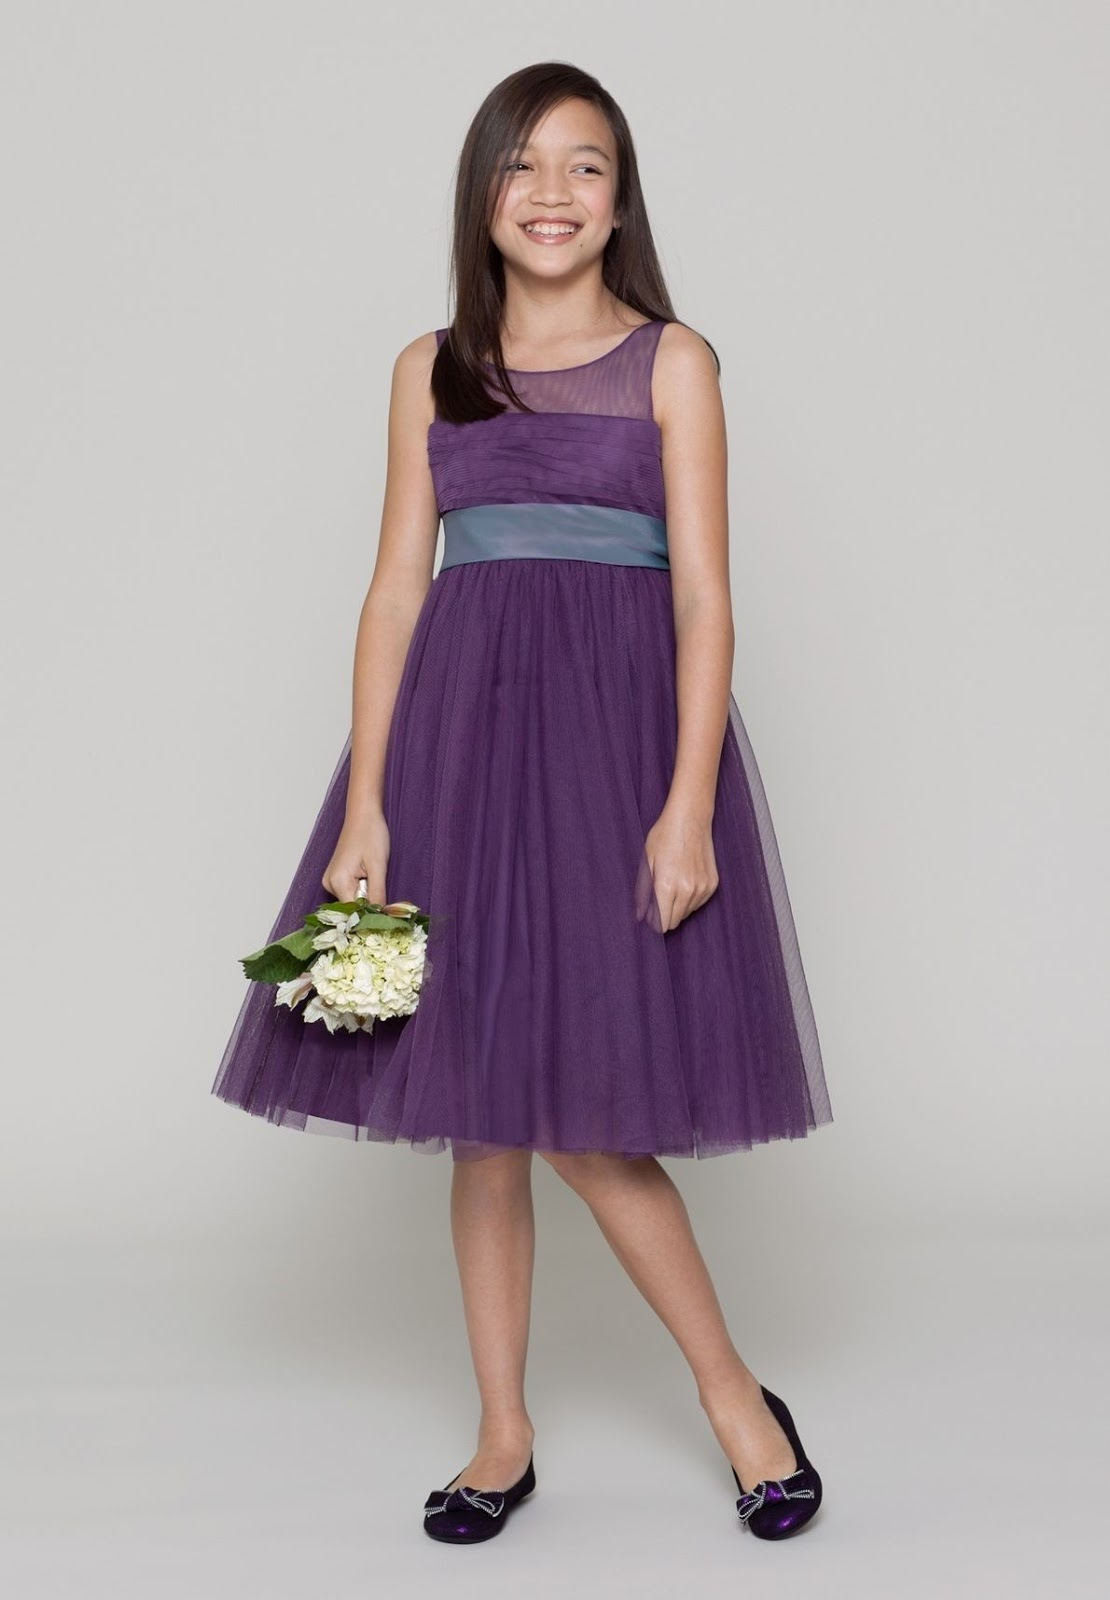 594ac2c364 WhiteAzalea Junior Dresses  New Arrivals  Junior Bridesmaid Dresses ...